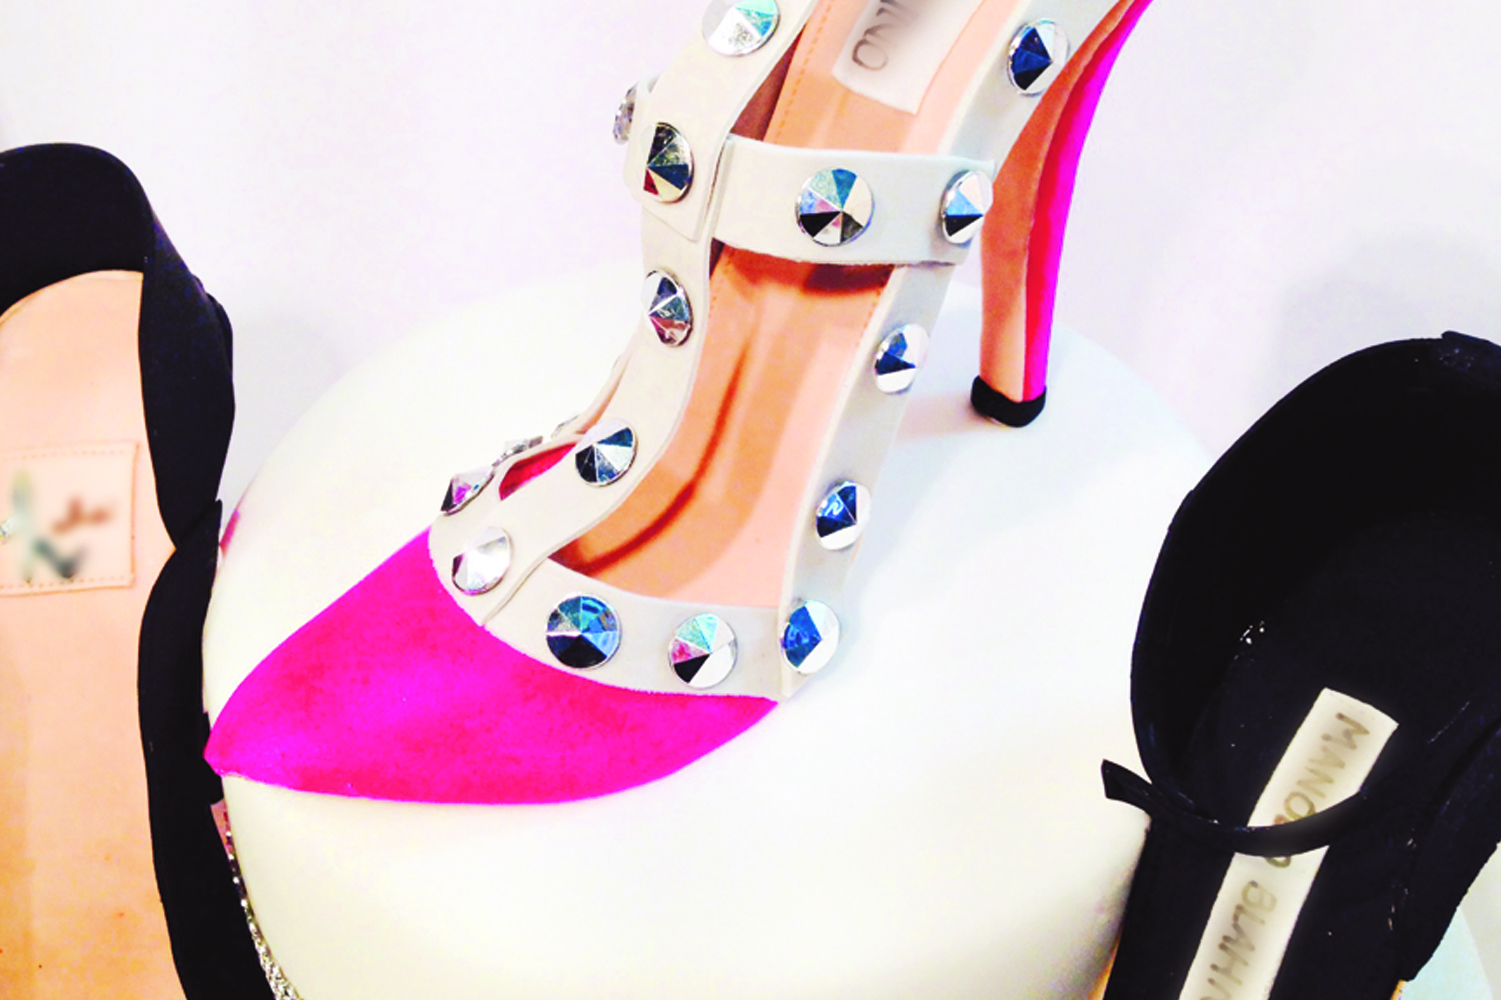 cakes-by-rachel-rachel-shoe-fashion-icing-cake.jpg